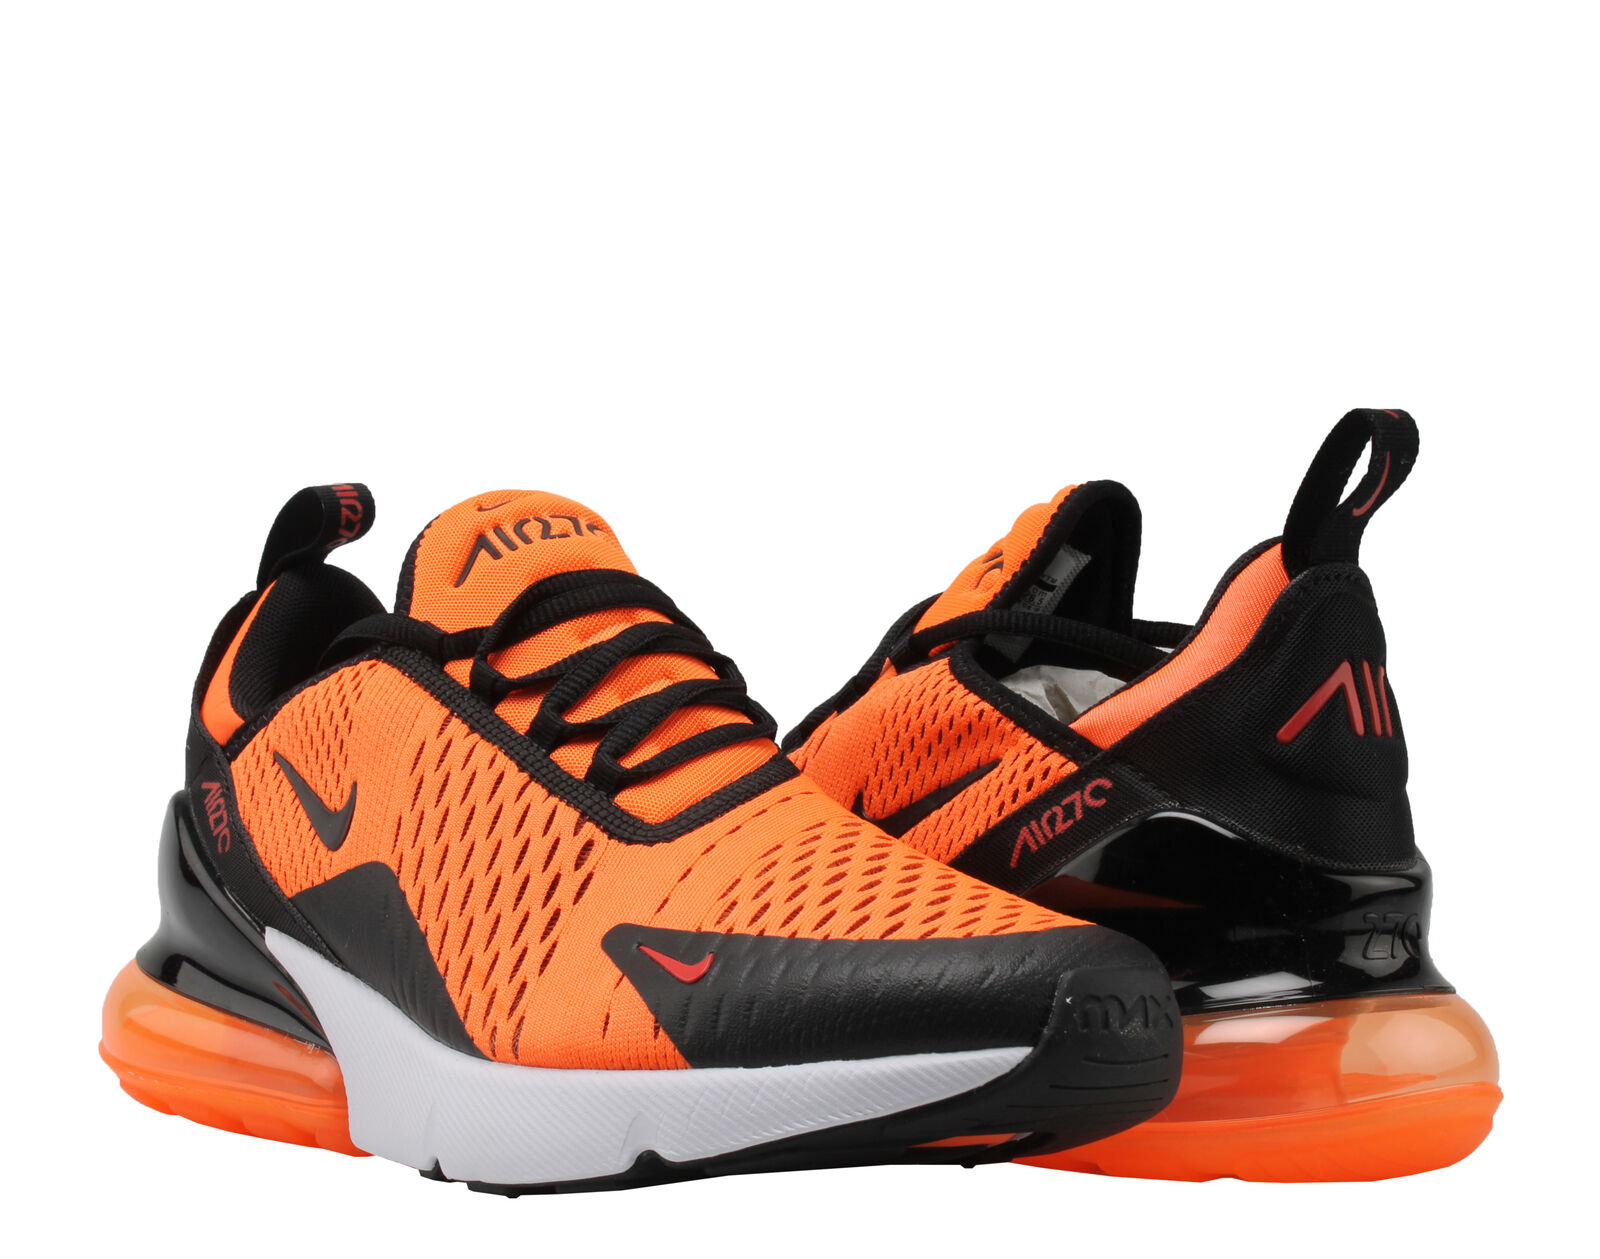 new style 2e593 20a5b Nike Air Max 270 Team Orange/Black-White Men's Lifestyle Shoes BV2517-800